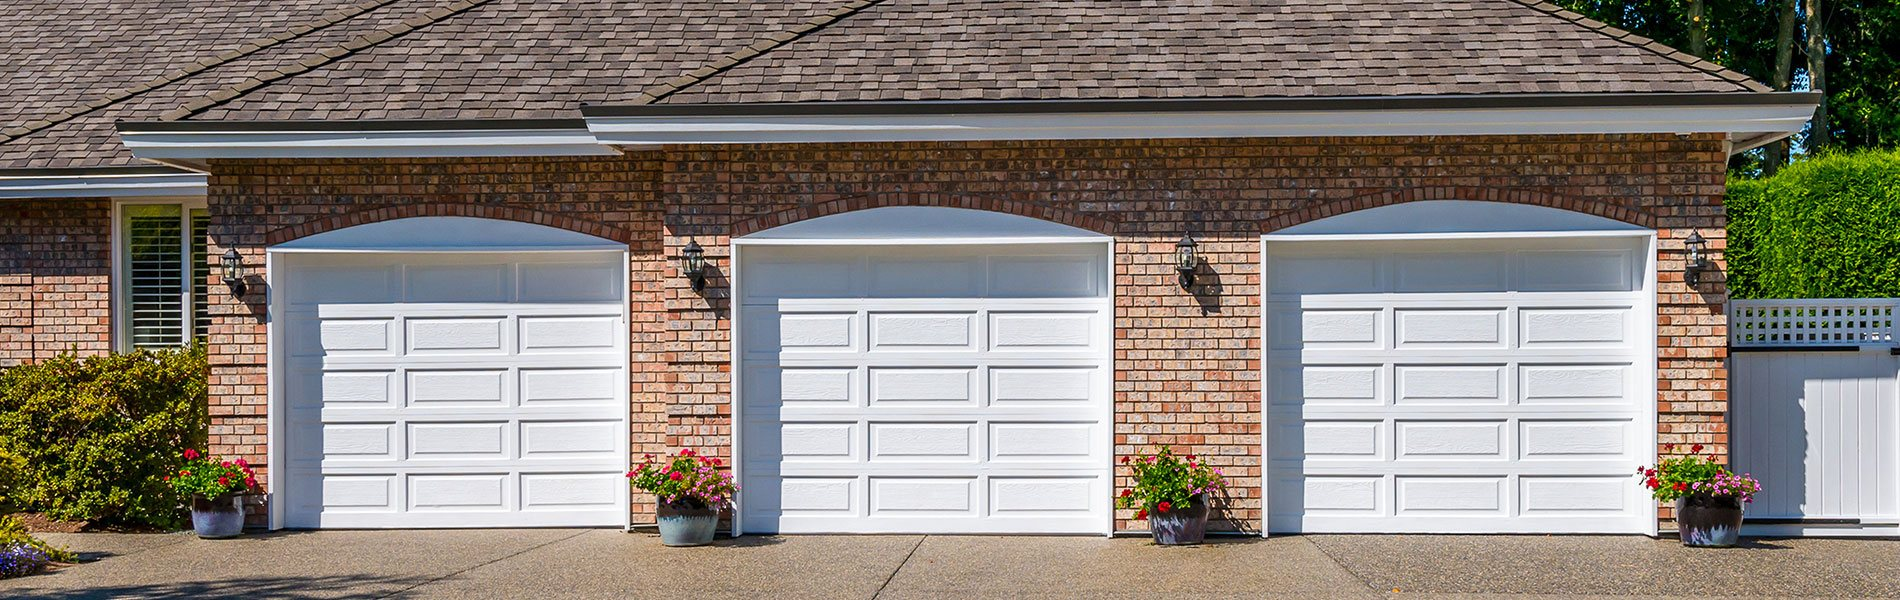 Galaxy Garage Door Repair Service, Foxborough, MA 508-456-7059